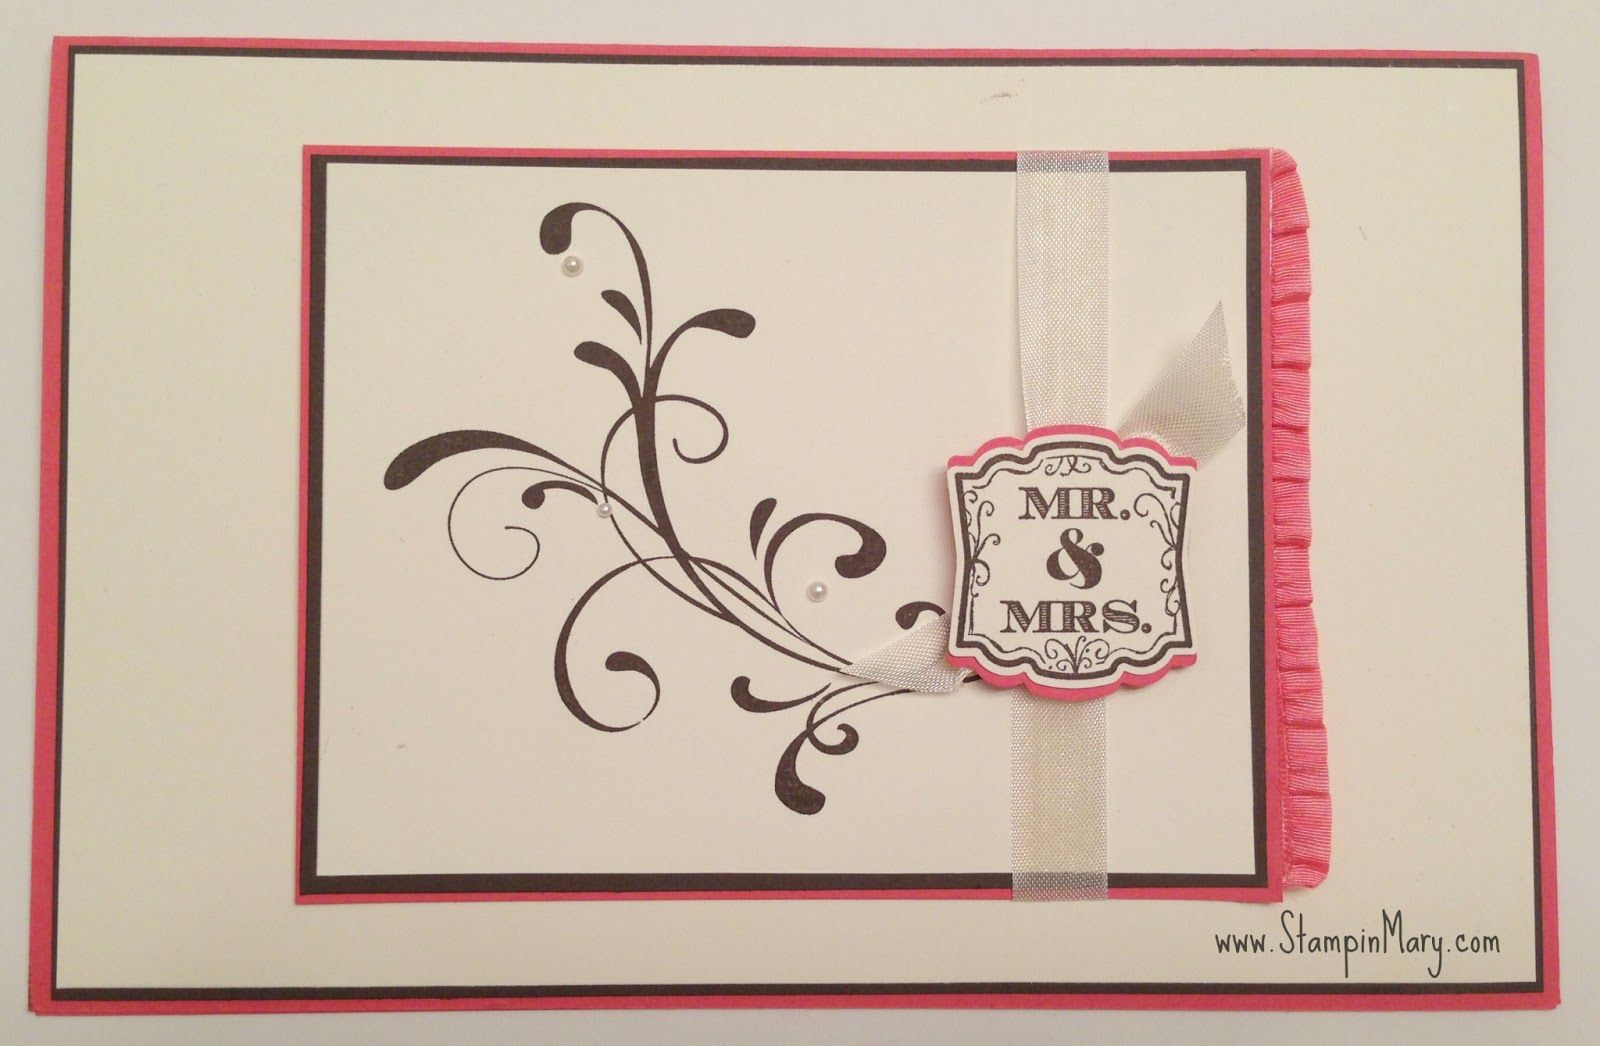 Stampin Mary Stampin Up Wedding Card Card Ideas Pinterest